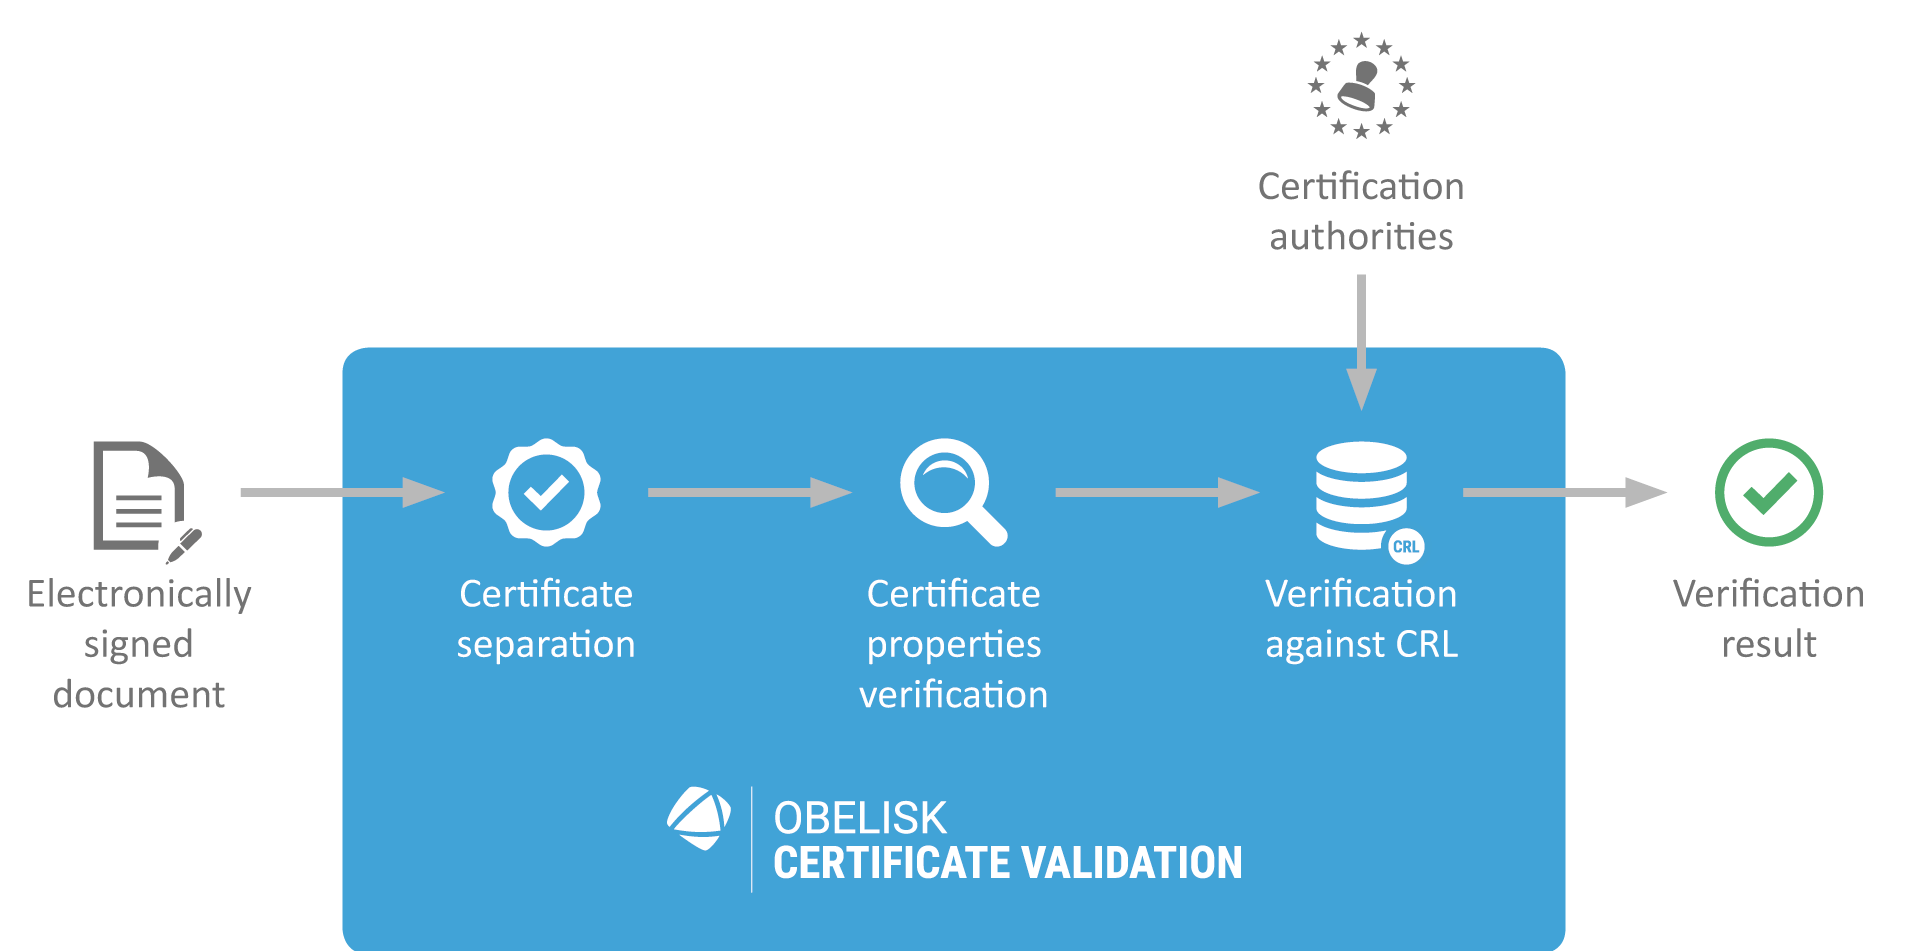 sefira-obelisk-certificate-validation-schema-en